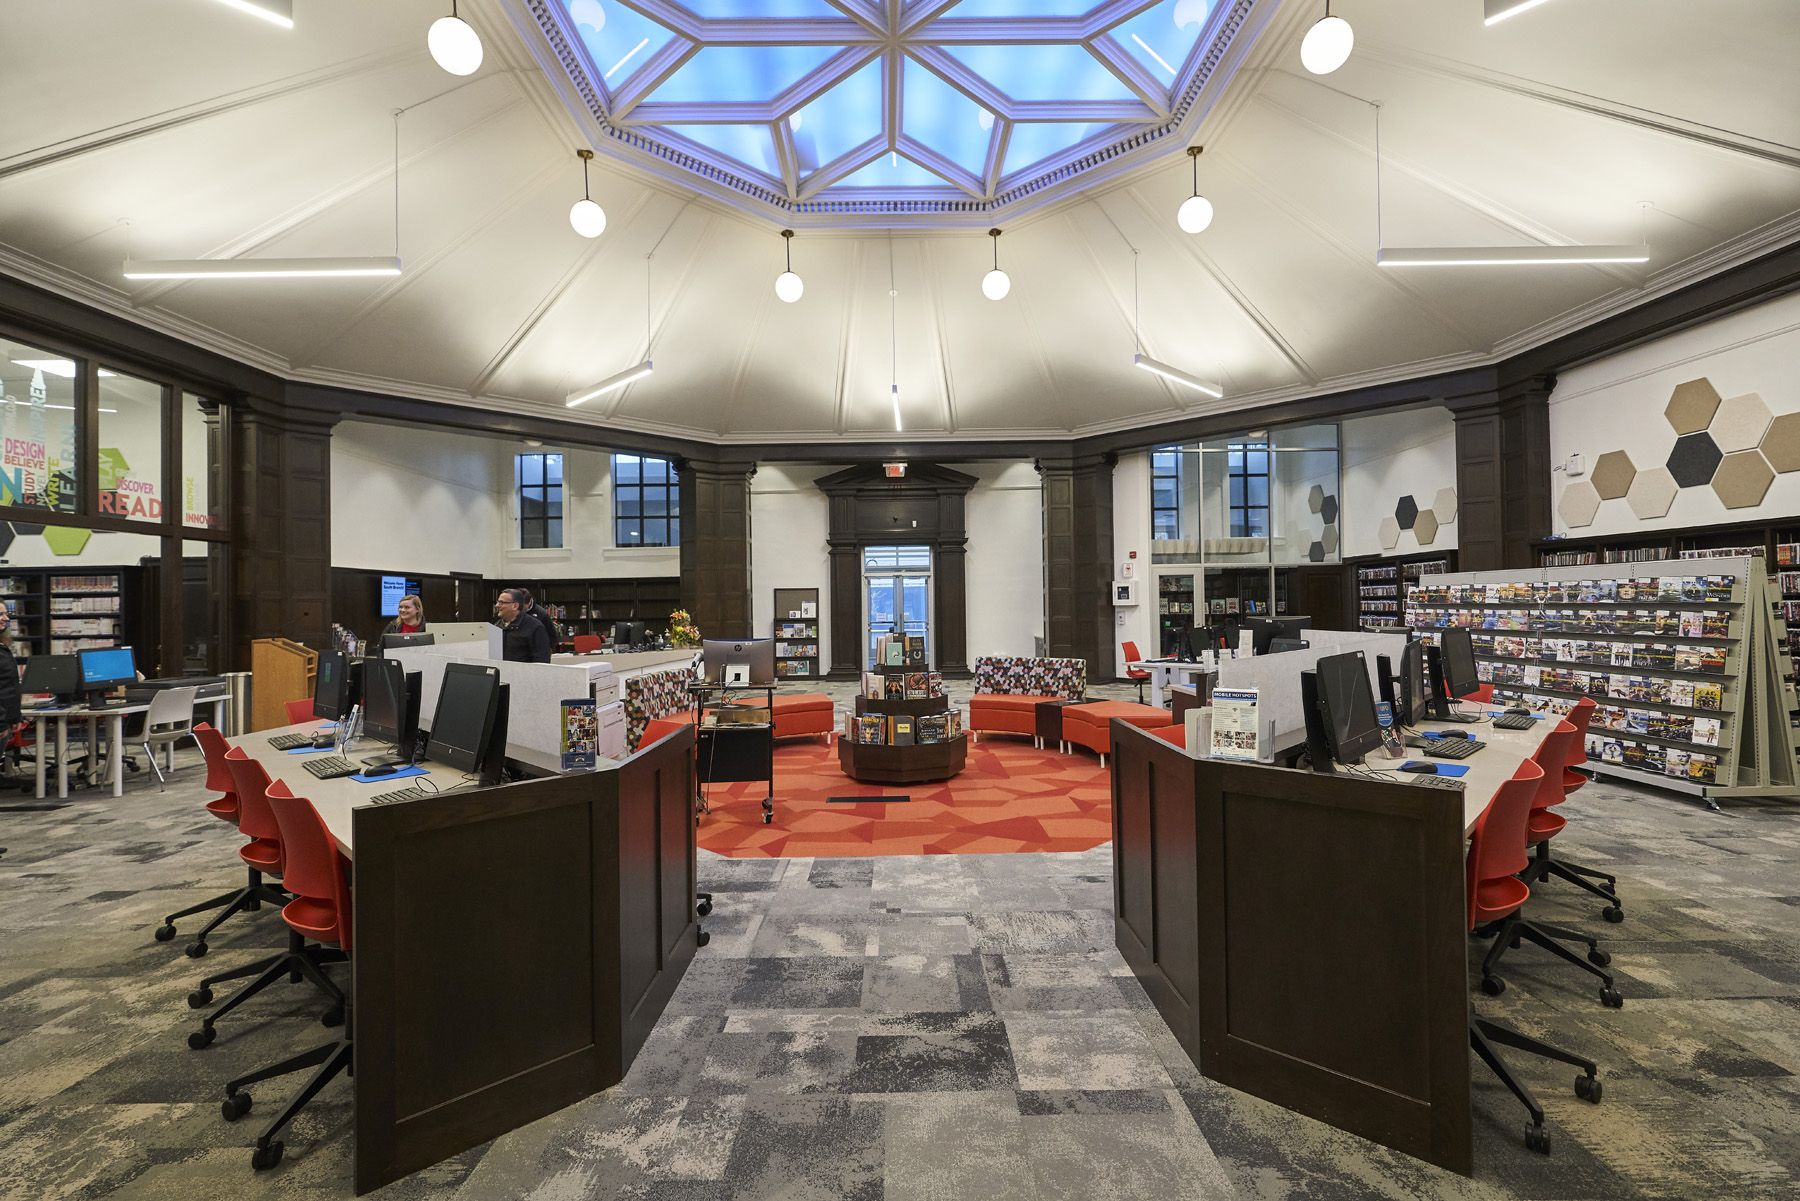 South Branch Cleveland Public Library Interiors Discover More